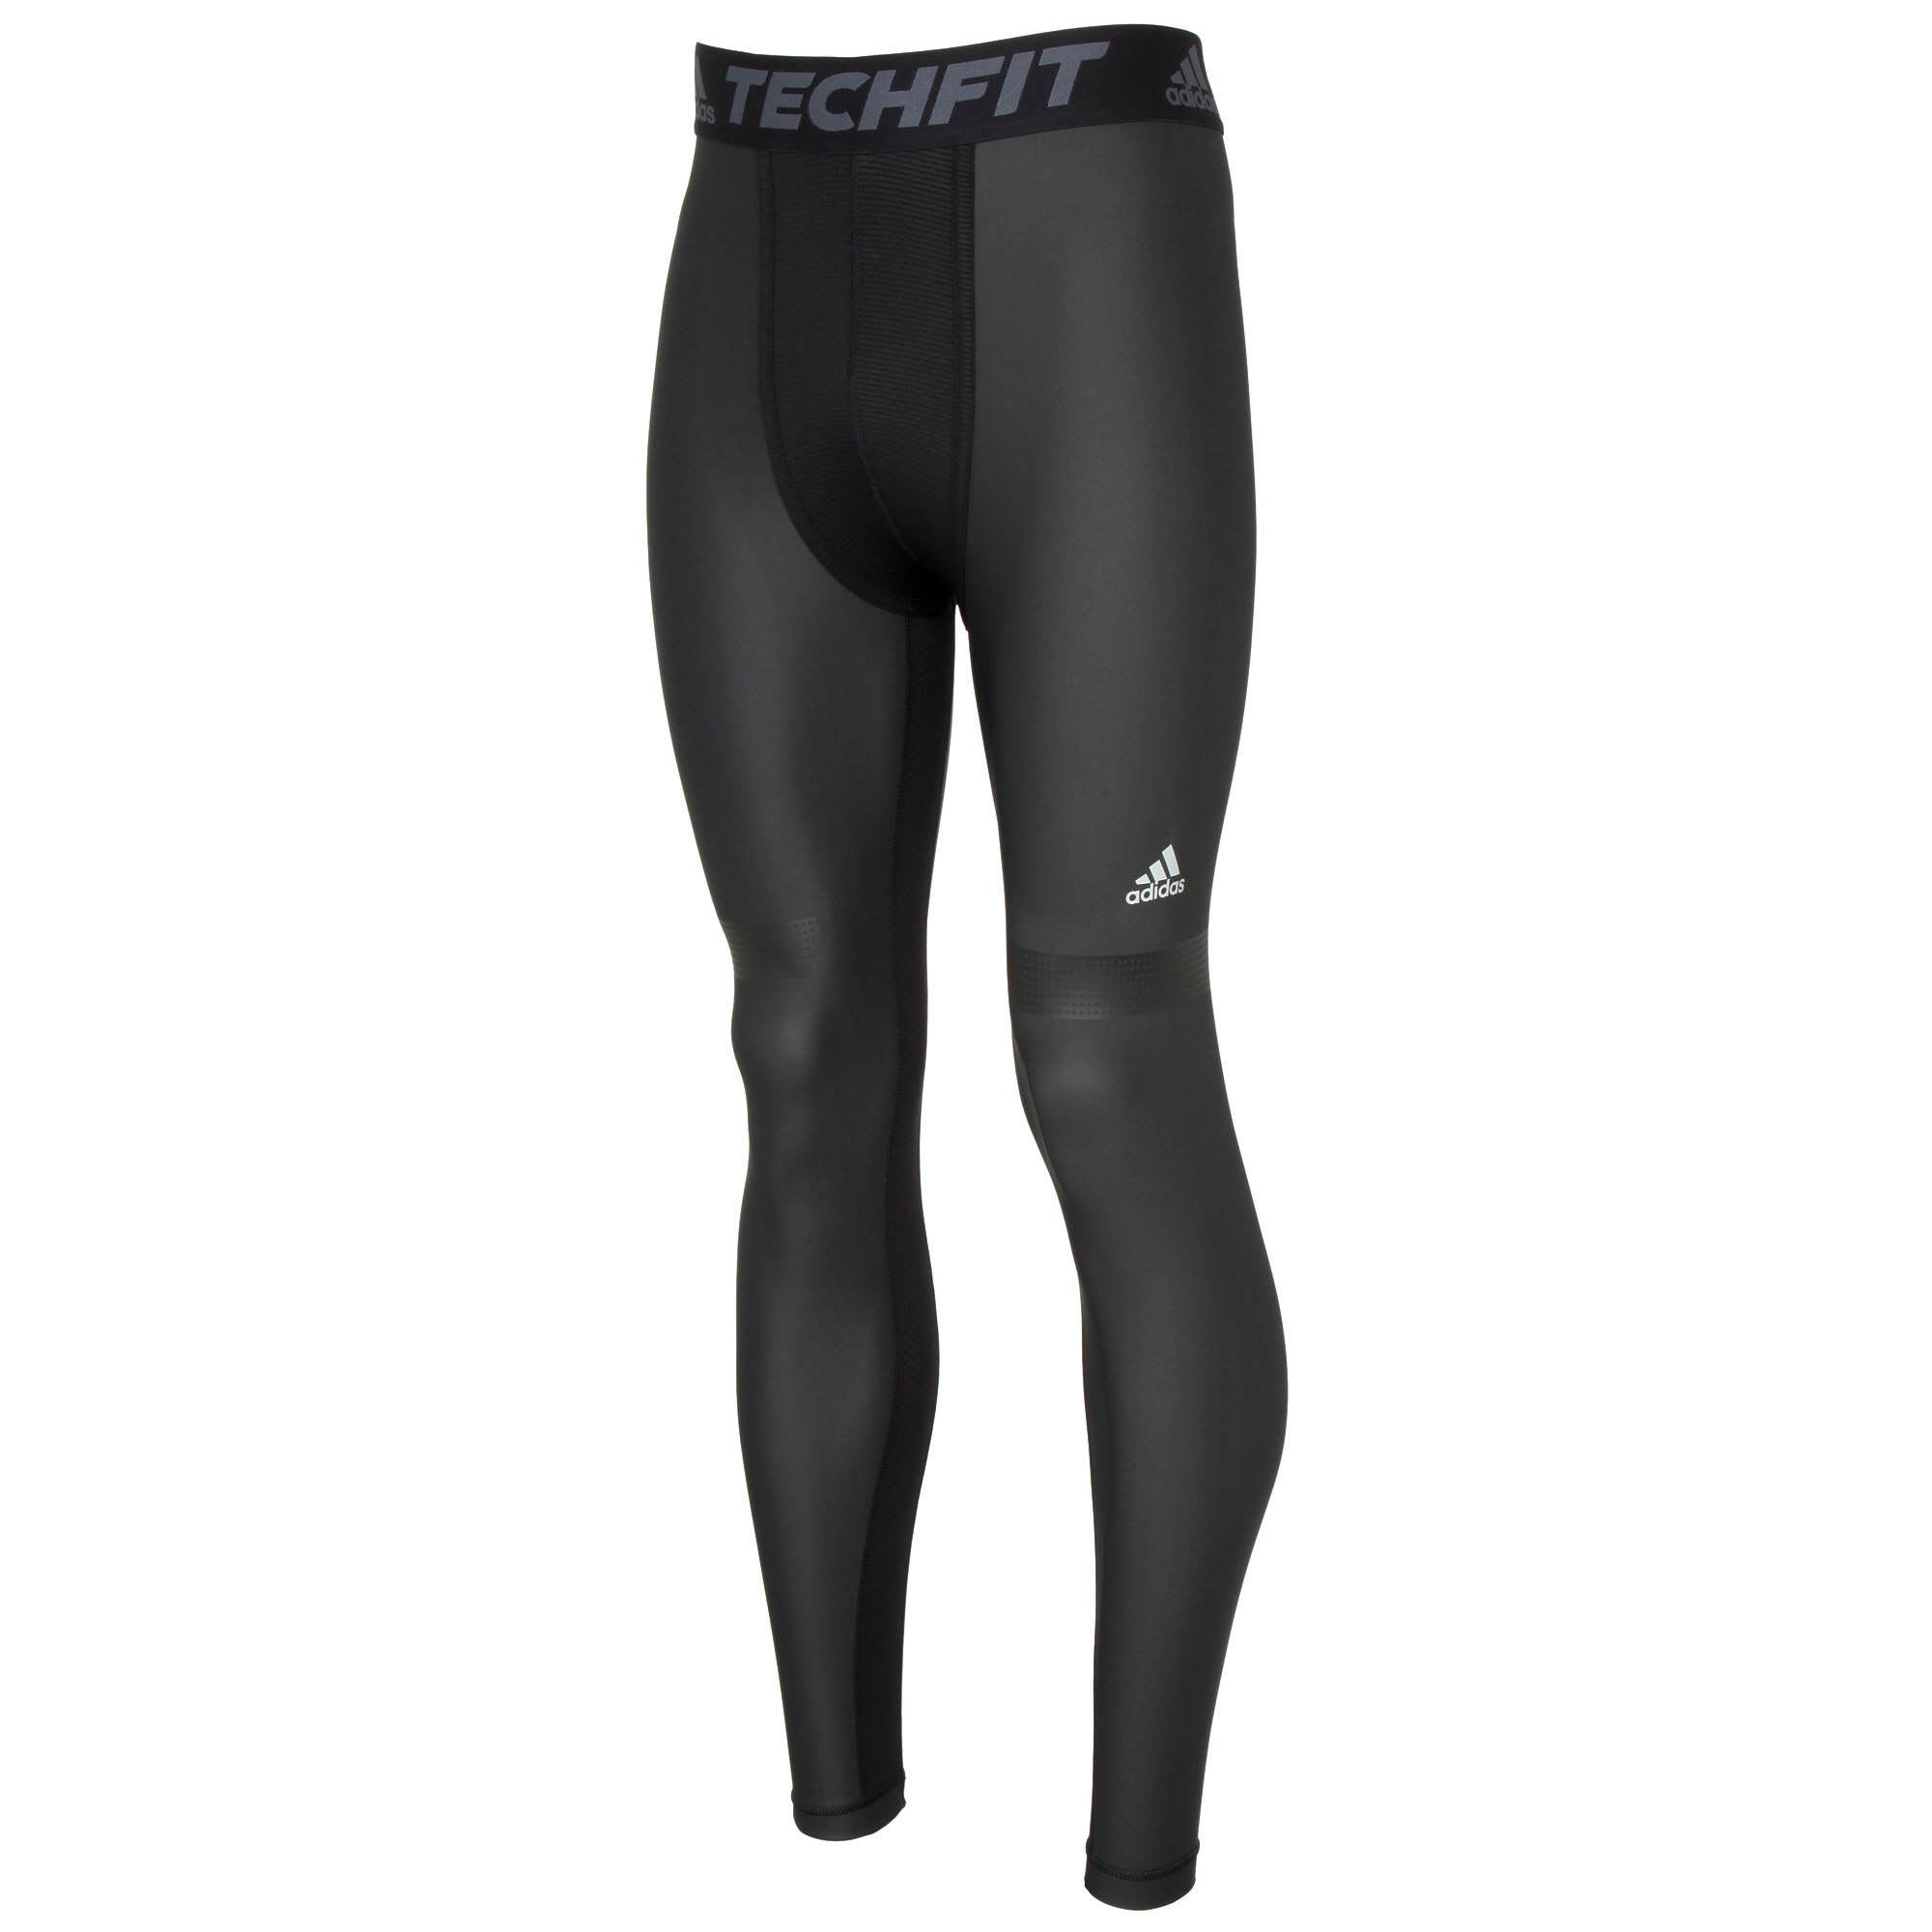 Wiggle | Adidas Techfit Chill Tight (SS16) | Compression Base Layers